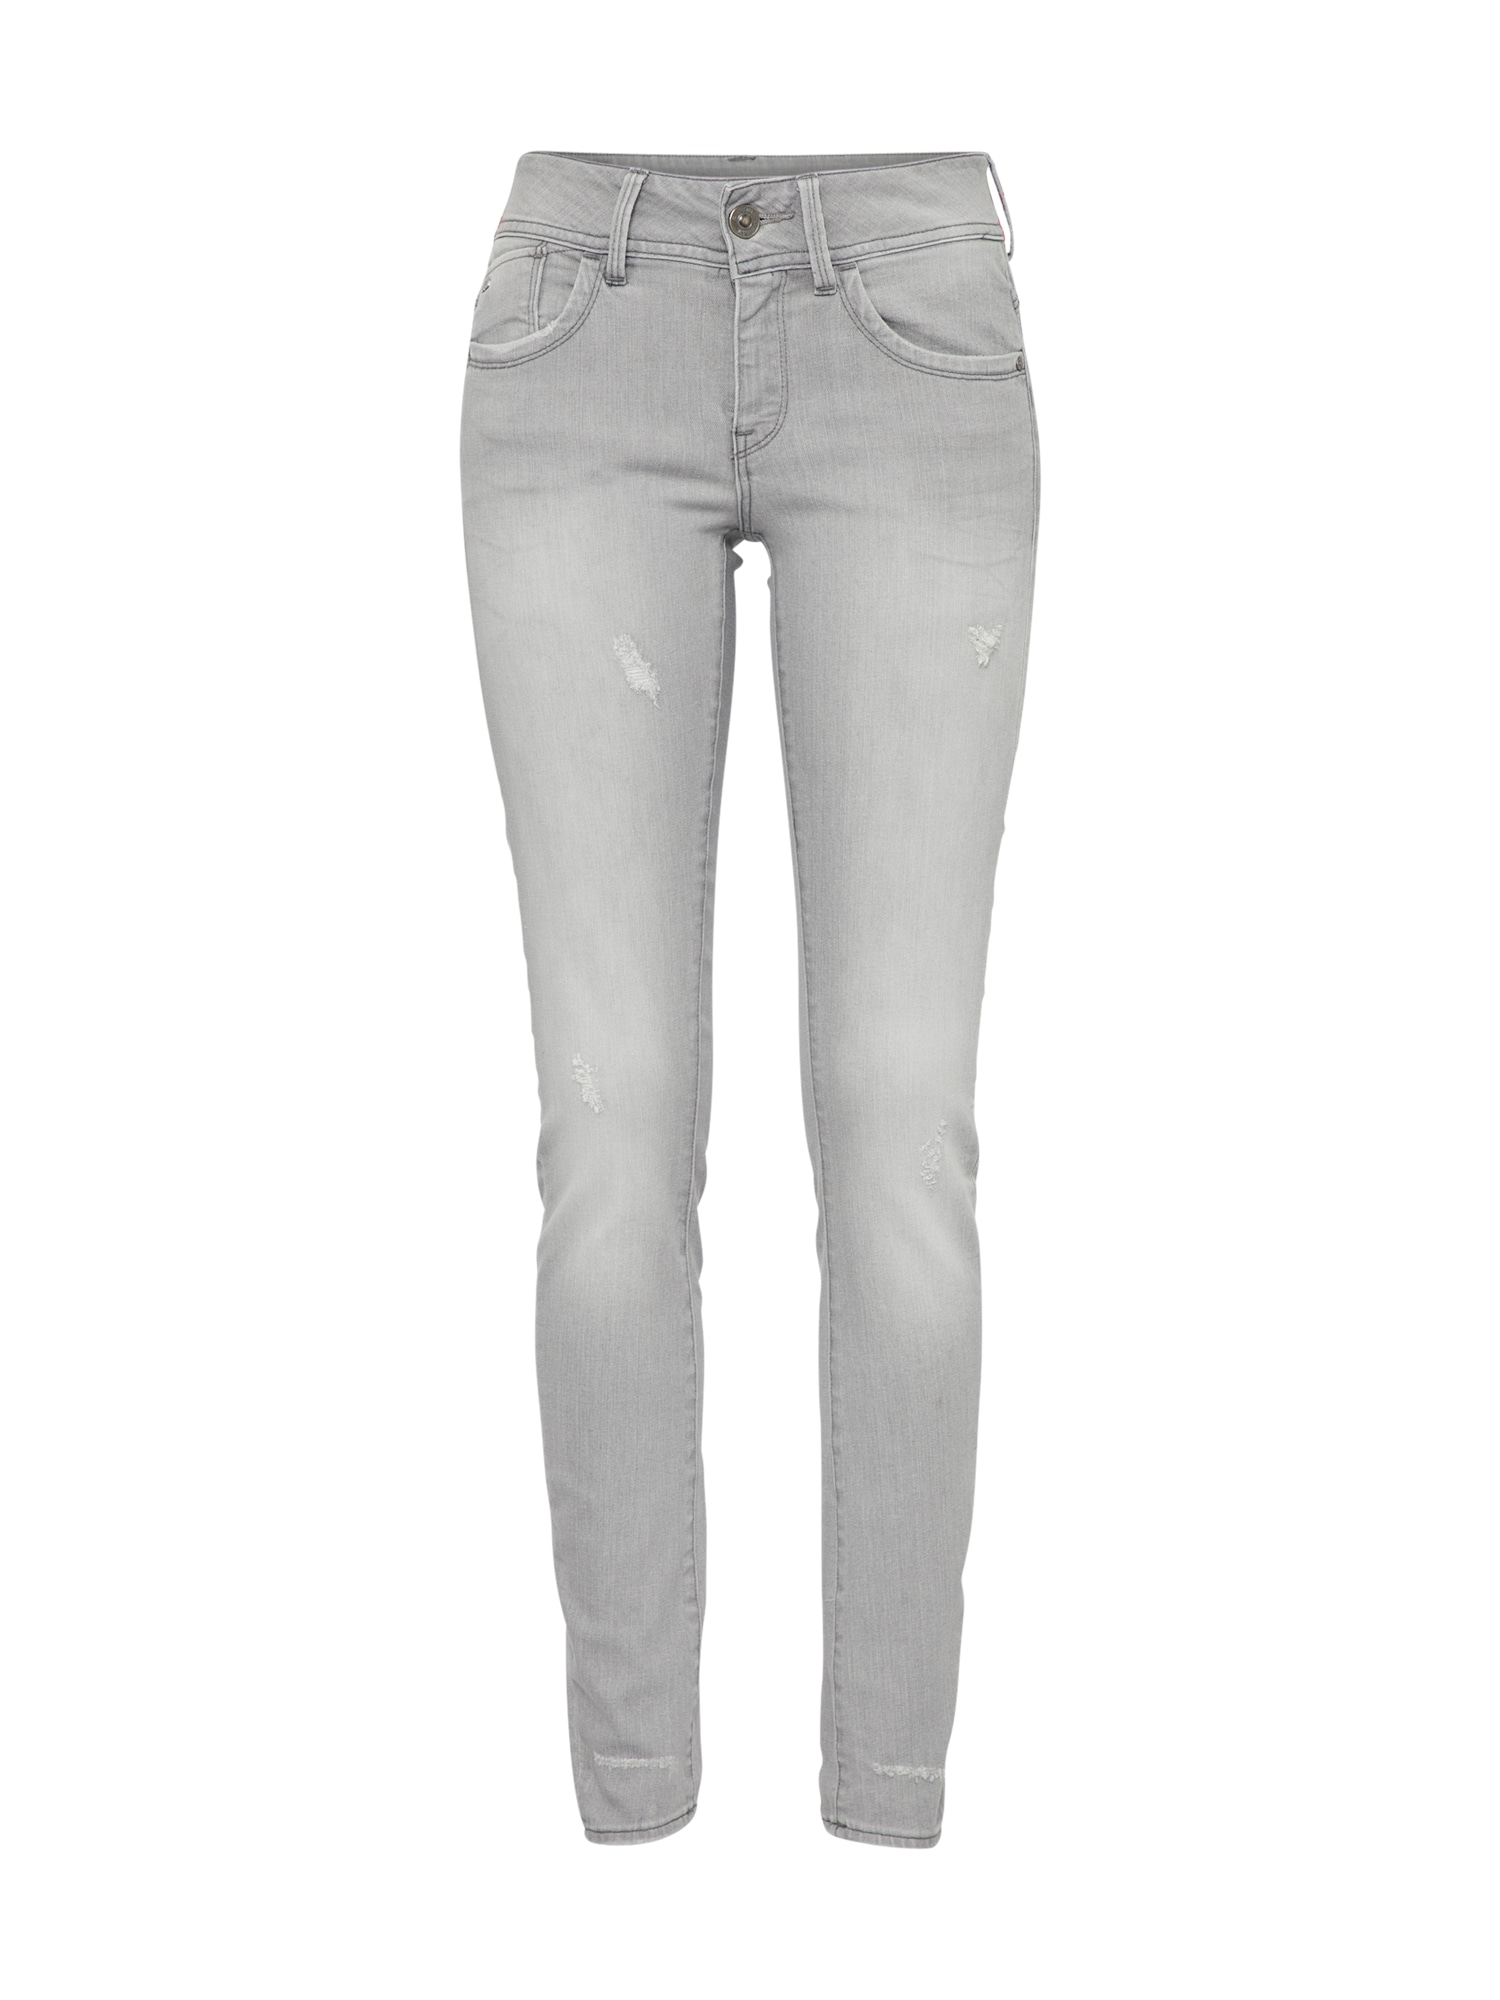 G-STAR RAW Dames Jeans Lynn grijs